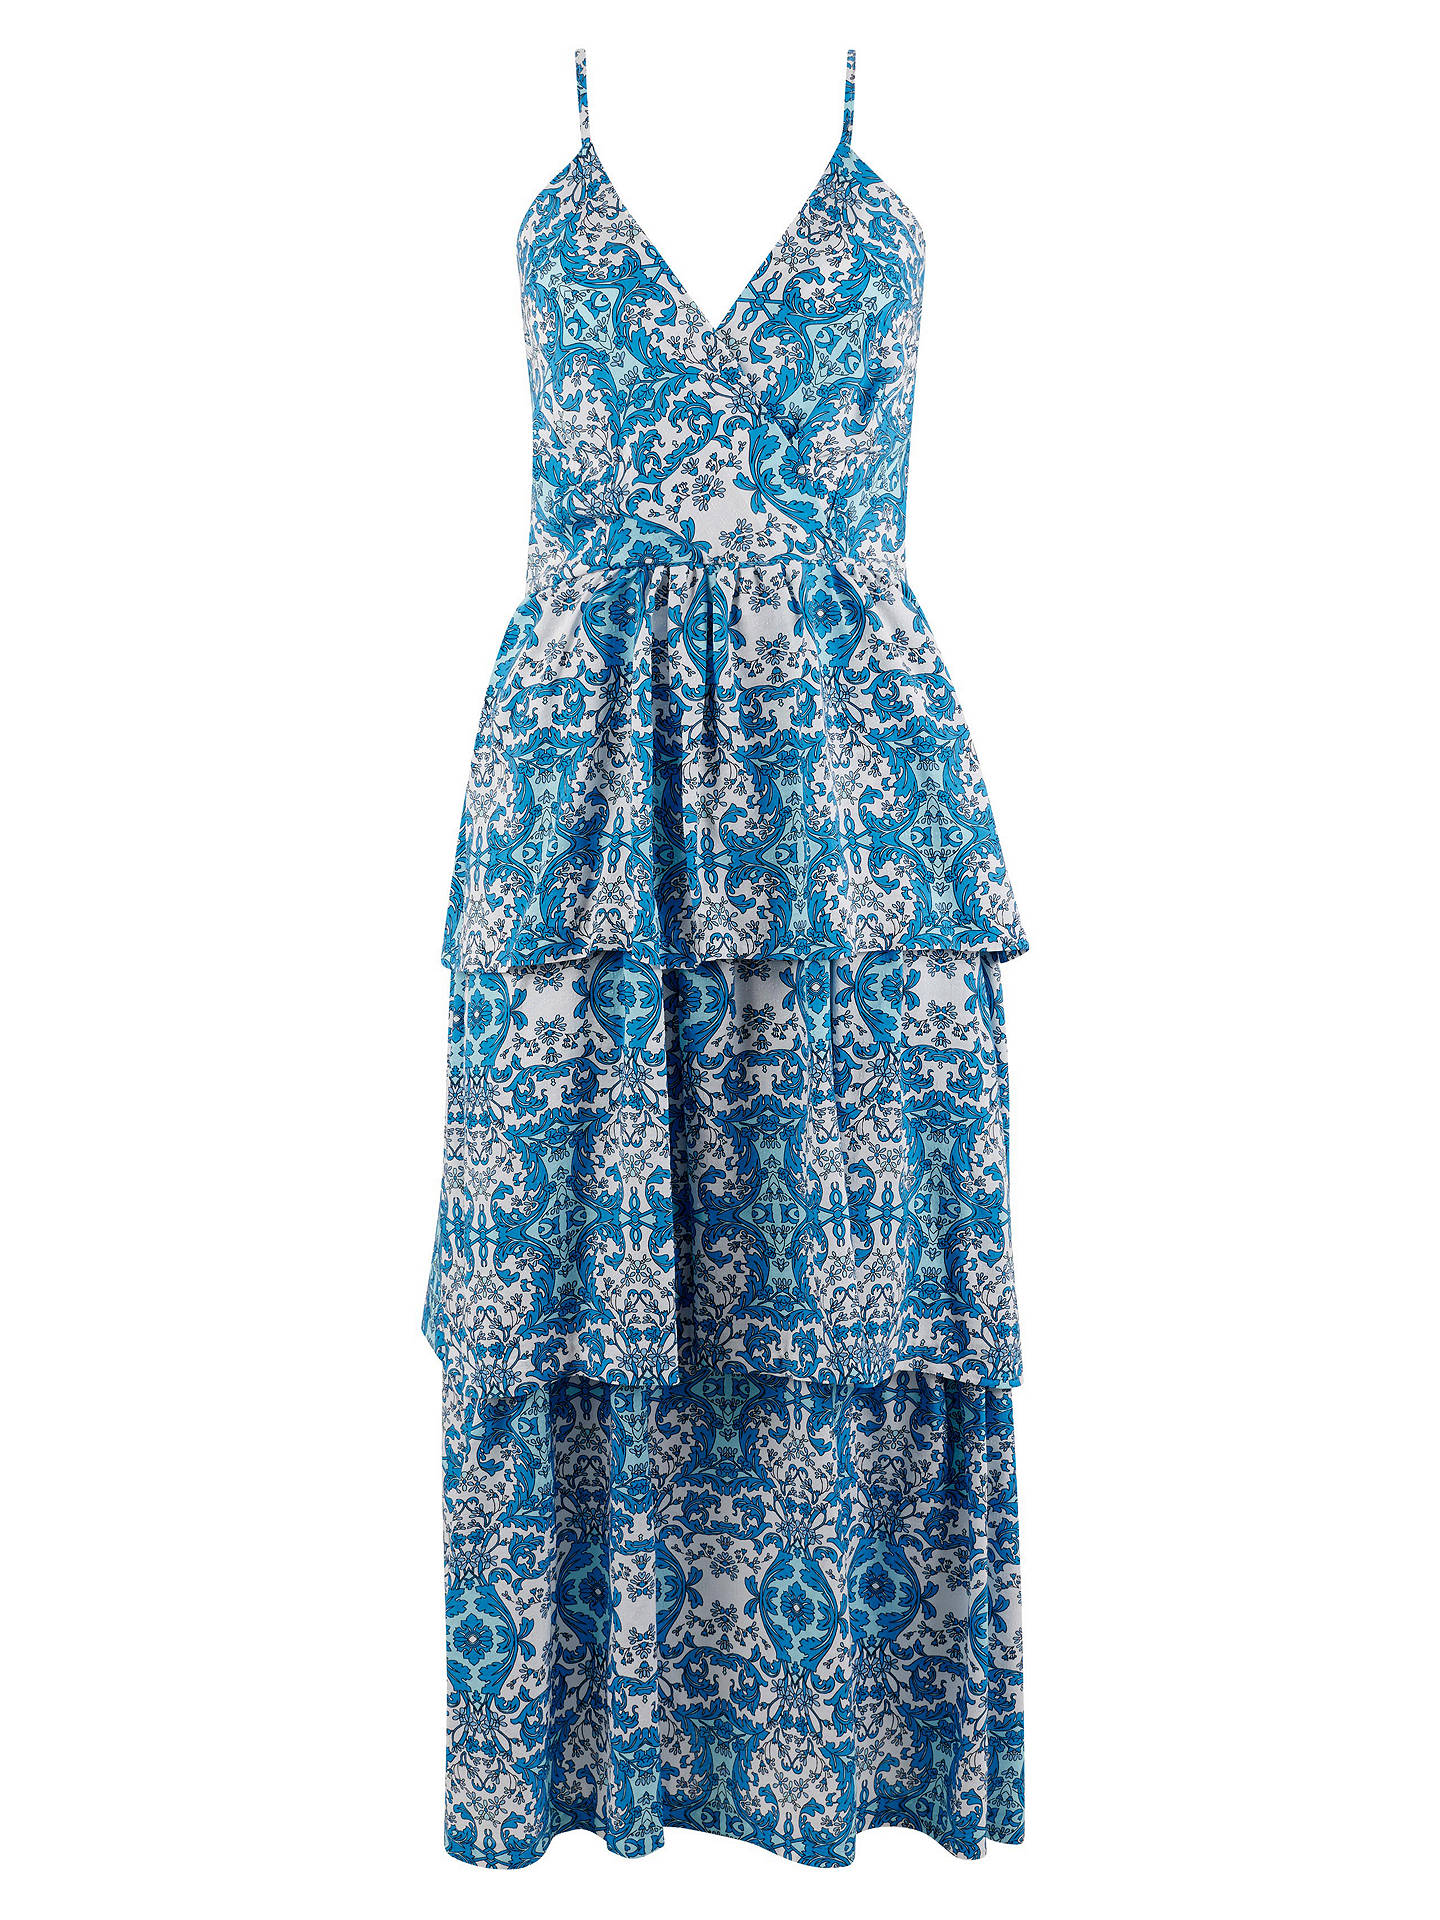 BuyCloset Ruffle Layer Dress, Blue, 8 Online at johnlewis.com